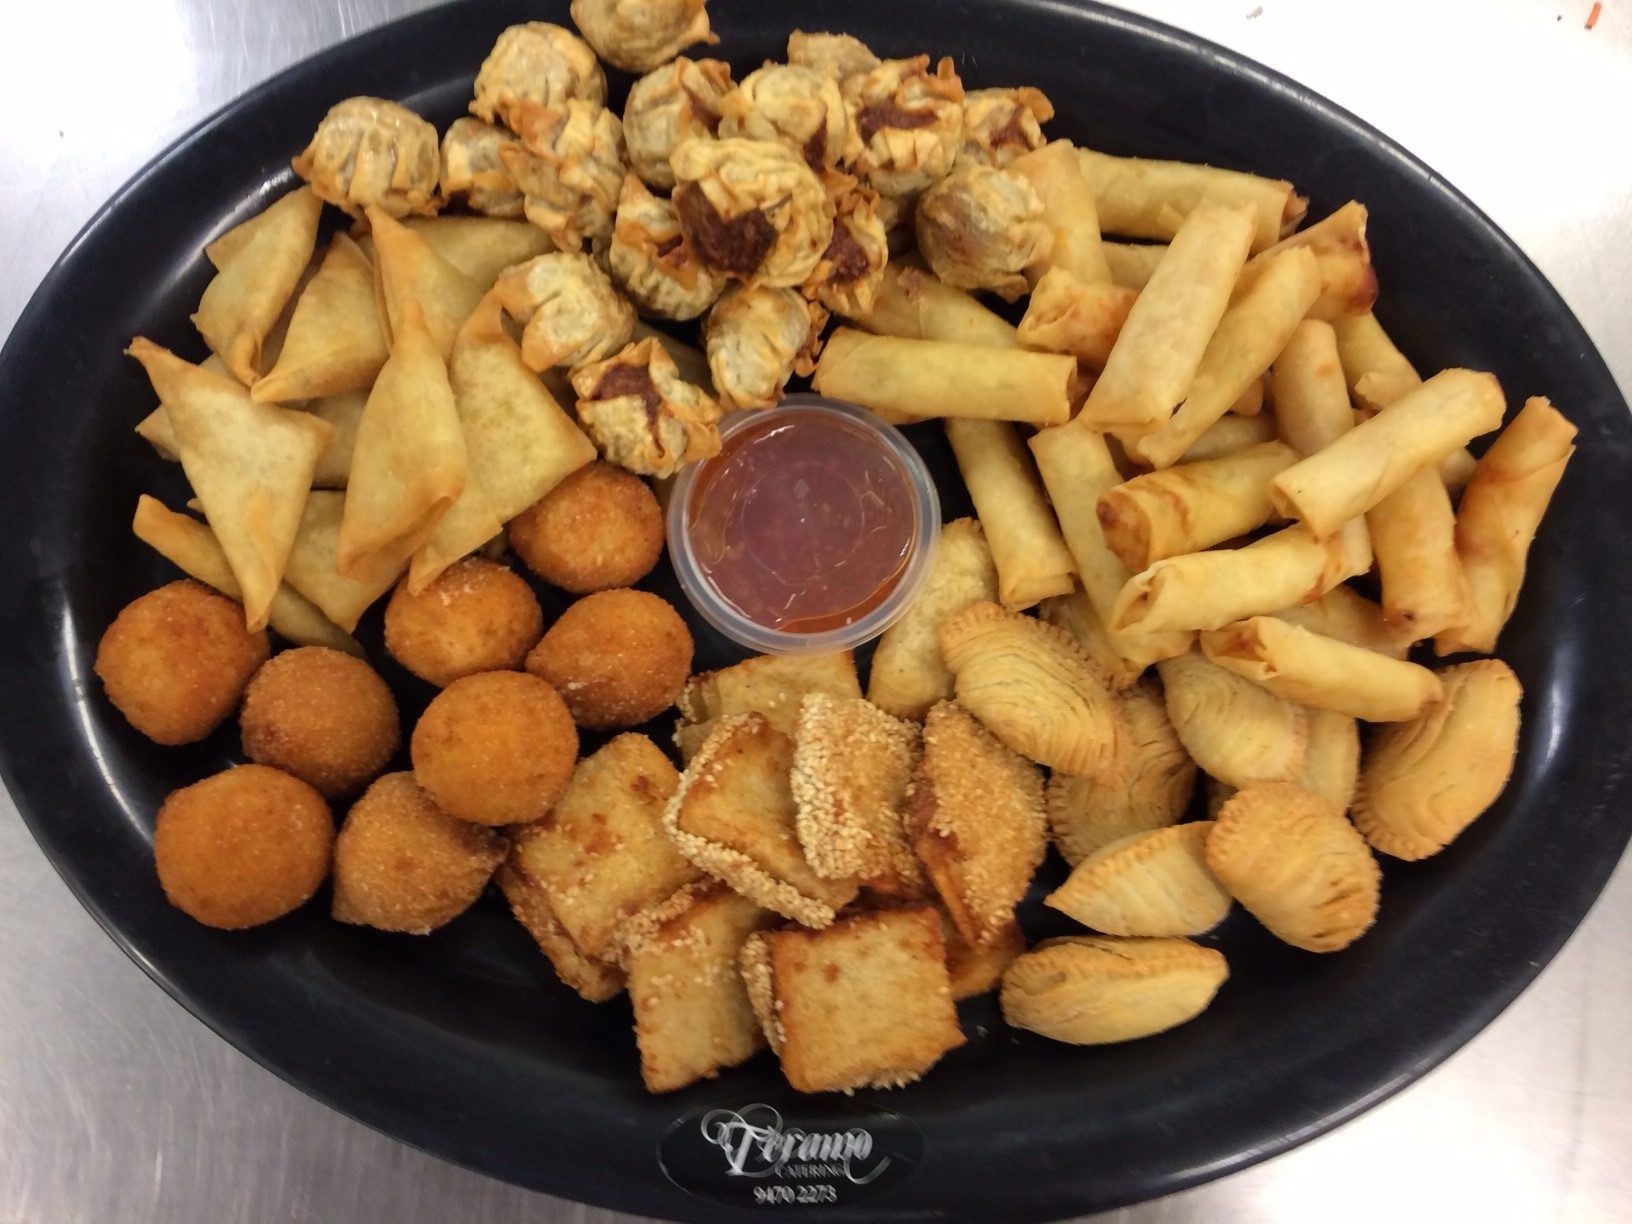 Platters Hot Teramo Catering Services